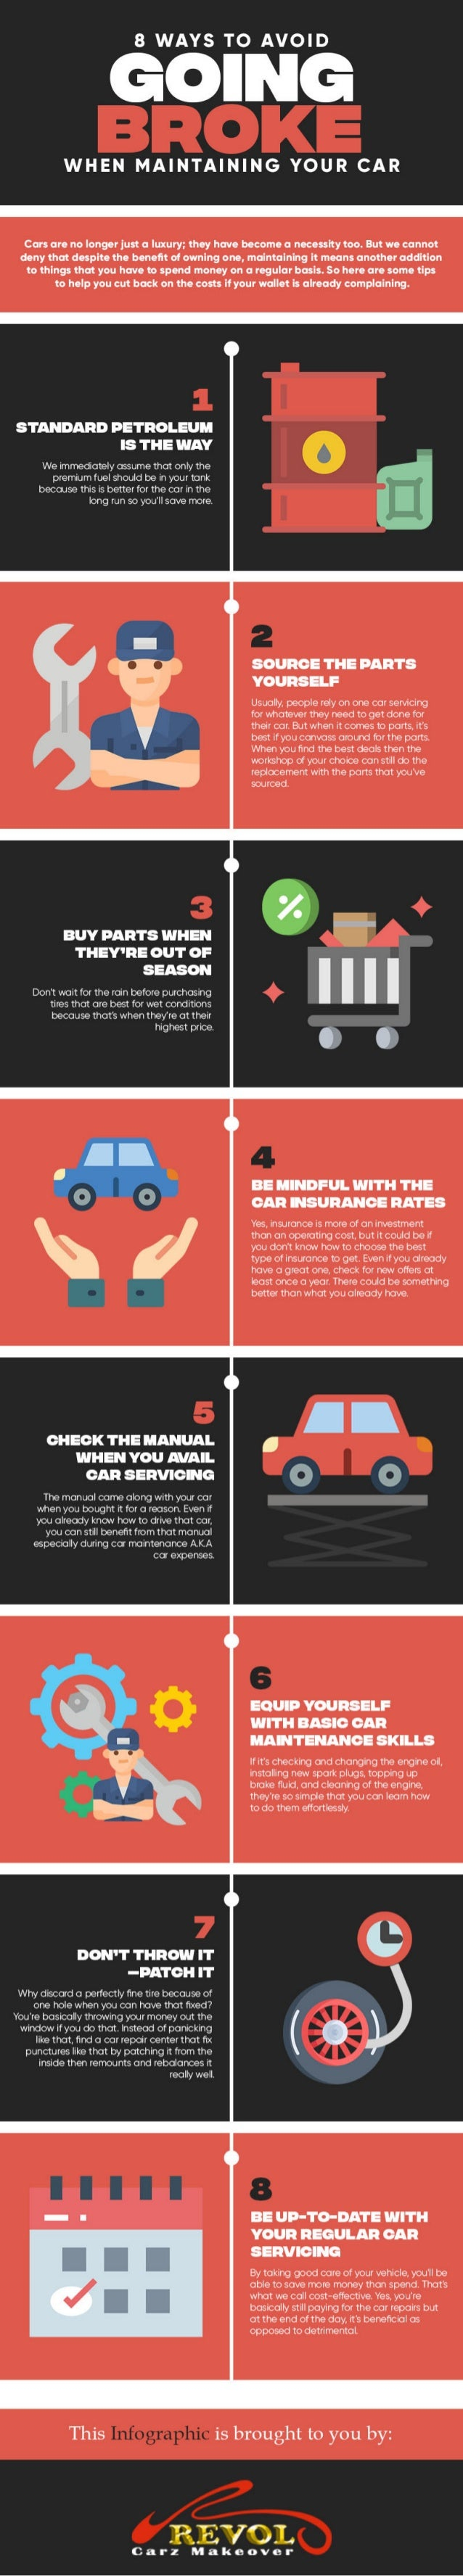 8 Ways To Avoid Going Broke When Maintaining Your Car